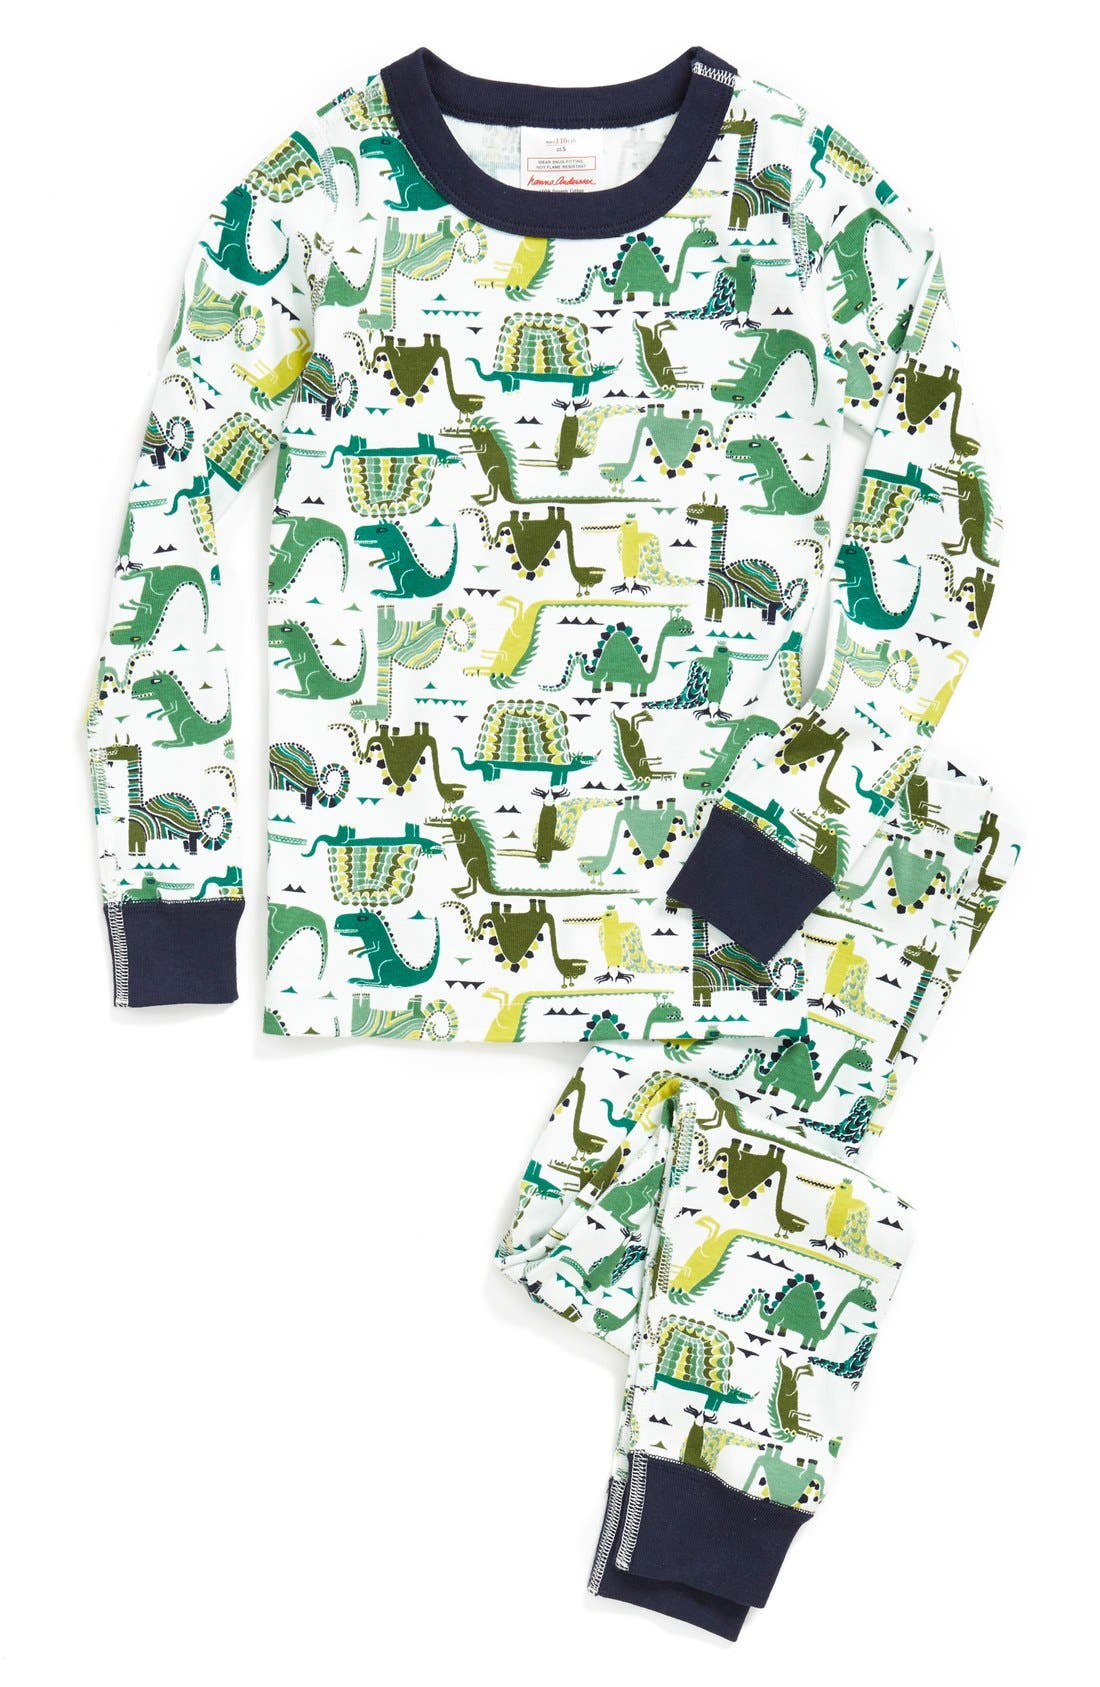 Main Image - Hanna Andersson 'Rockets' Fitted Long Johns (Toddler Boys, Little Boys & Big Boys)